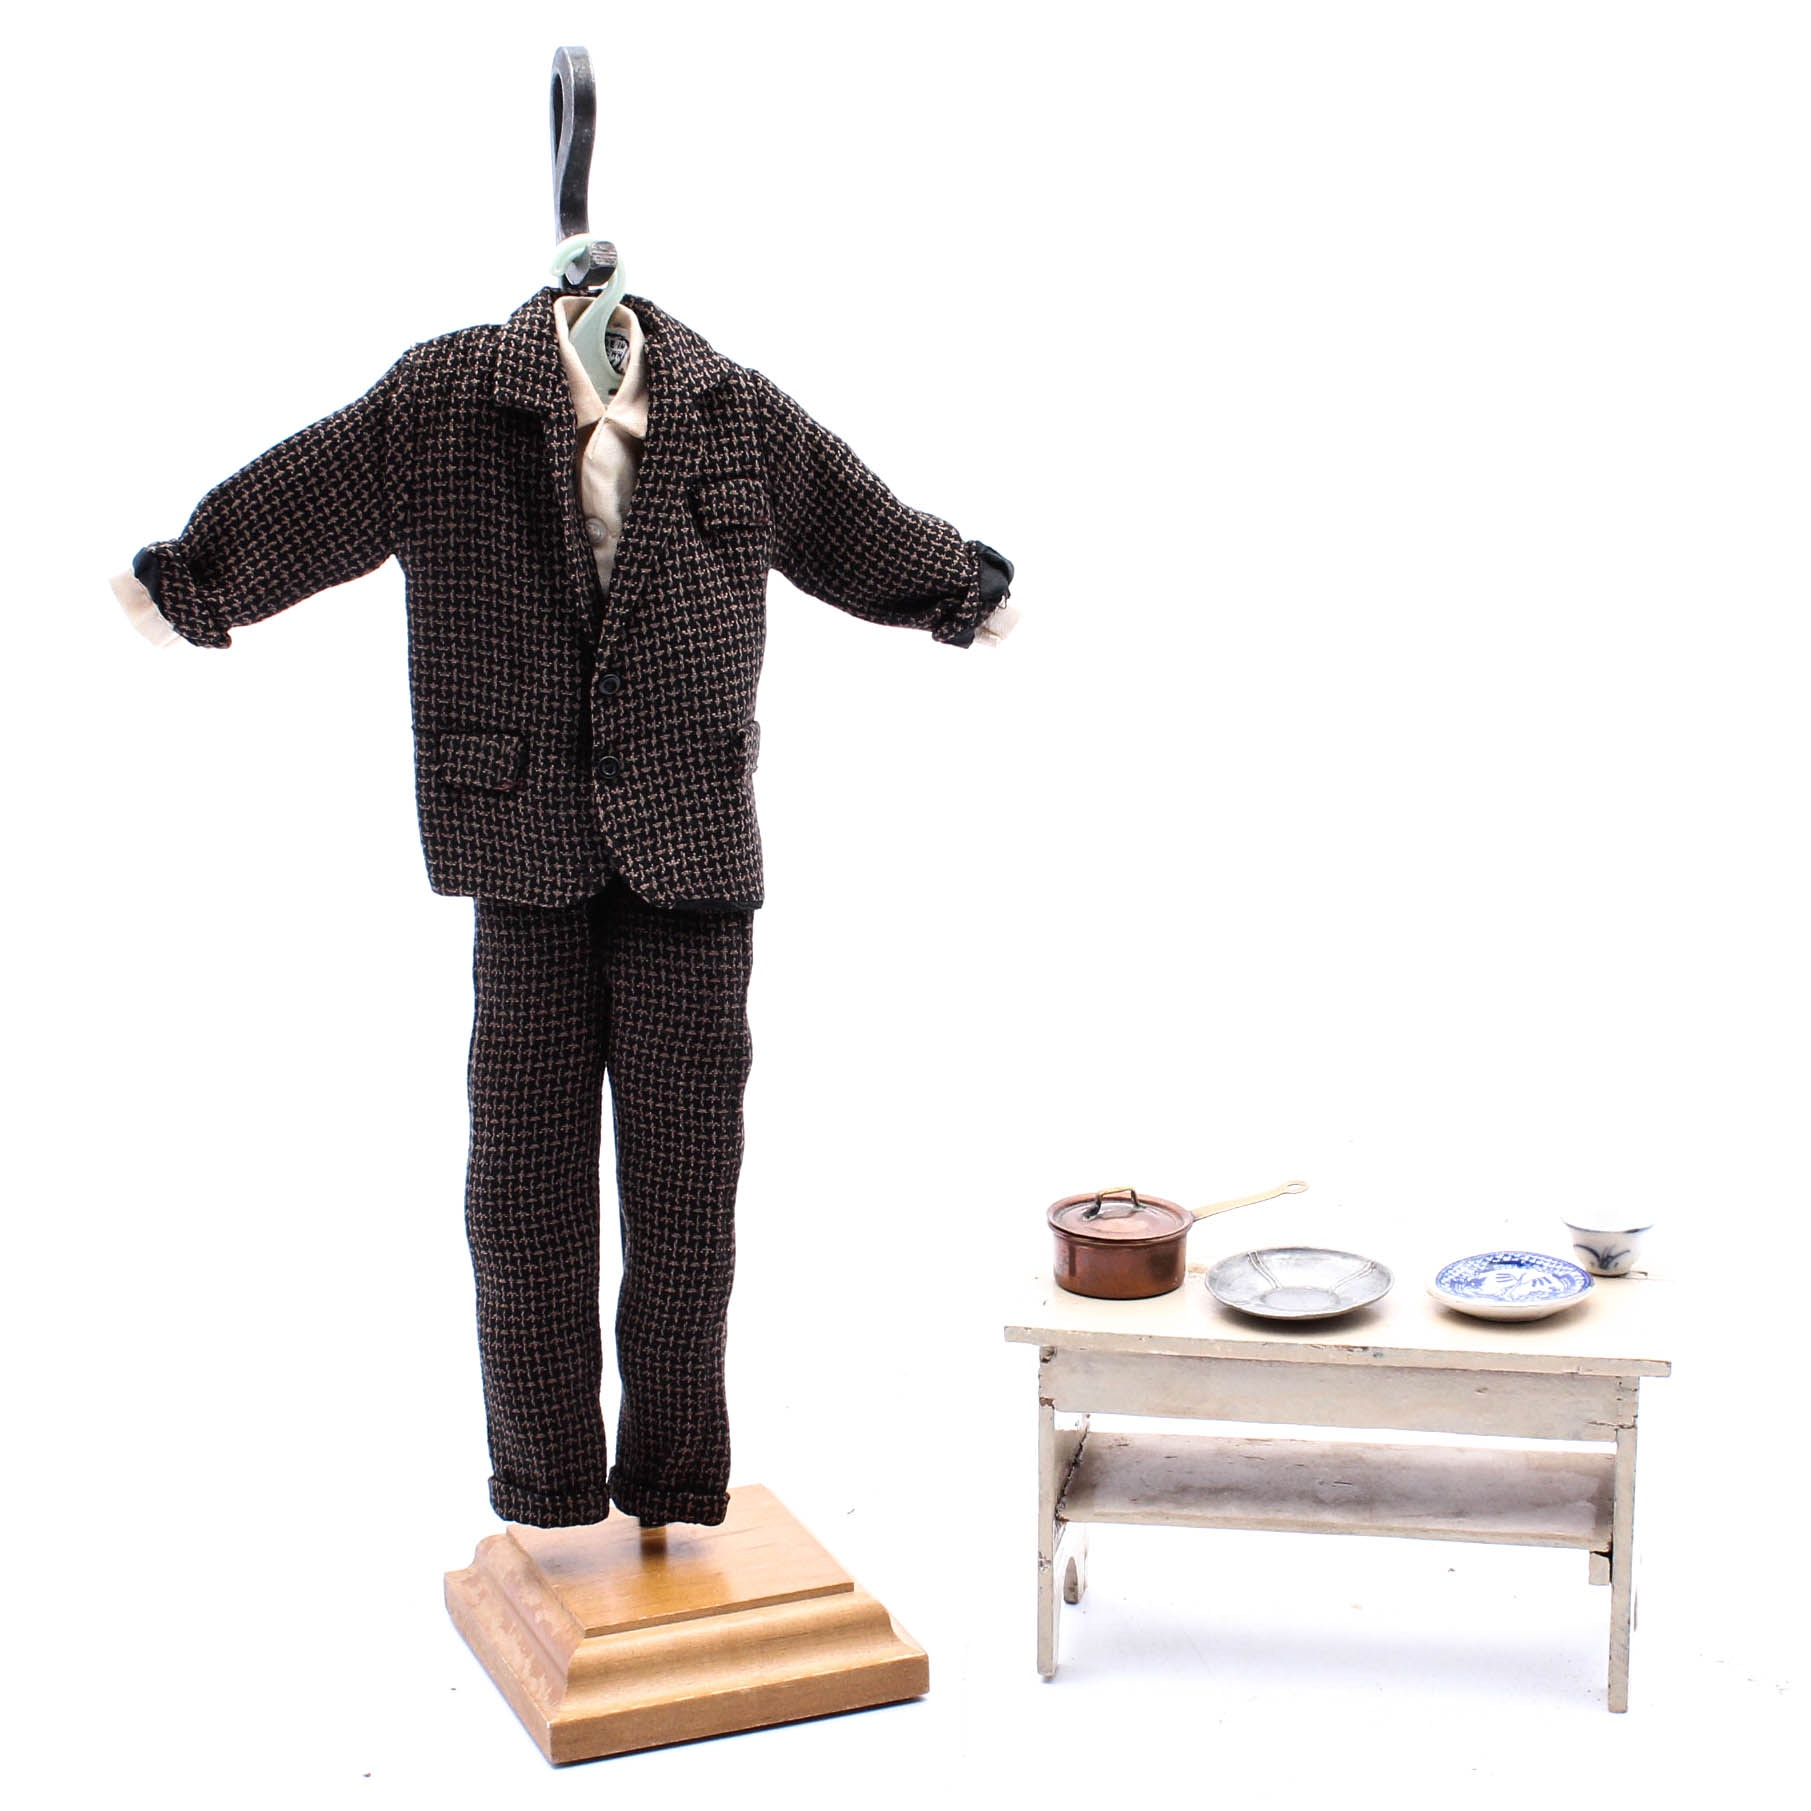 1930s Miniature Tweed Suit and Doll Furnishings